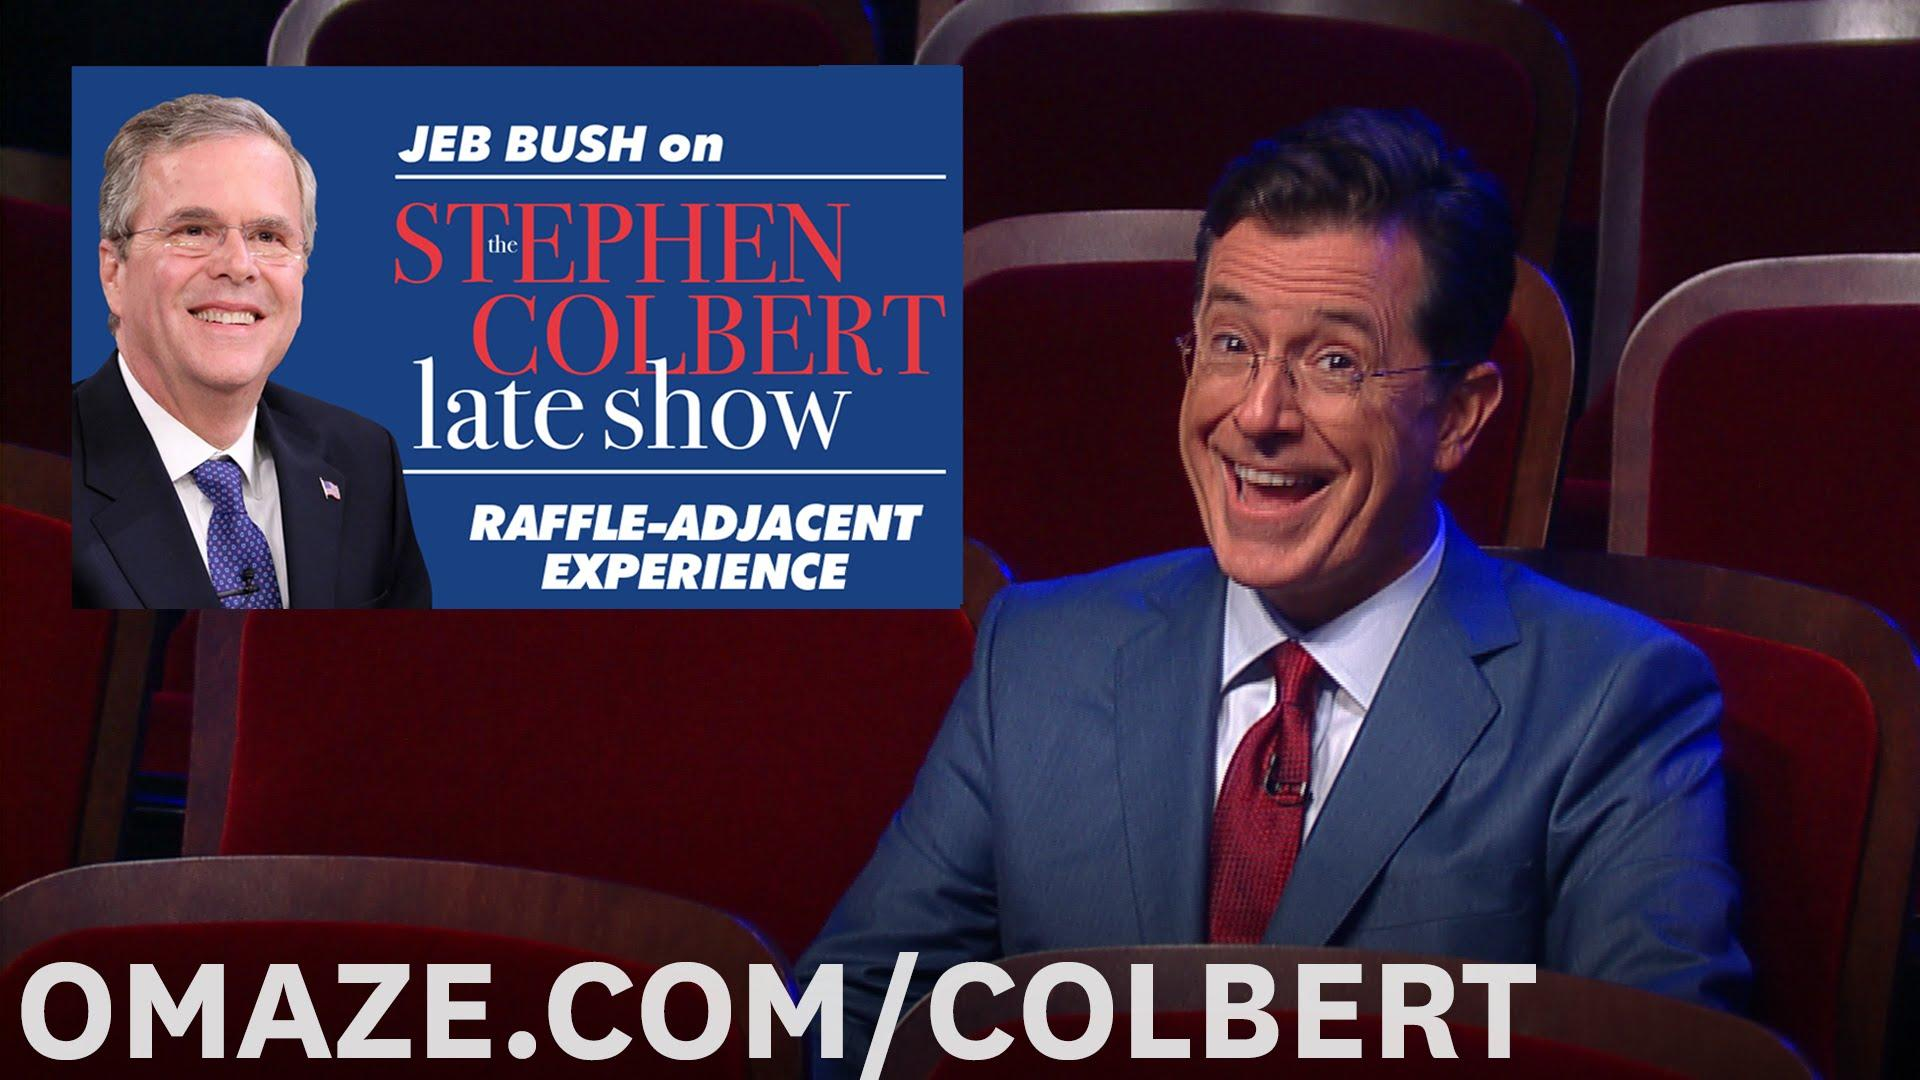 Jeb Bush has already annoyed Stephen Colbert ahead of their 'Late Show' interview